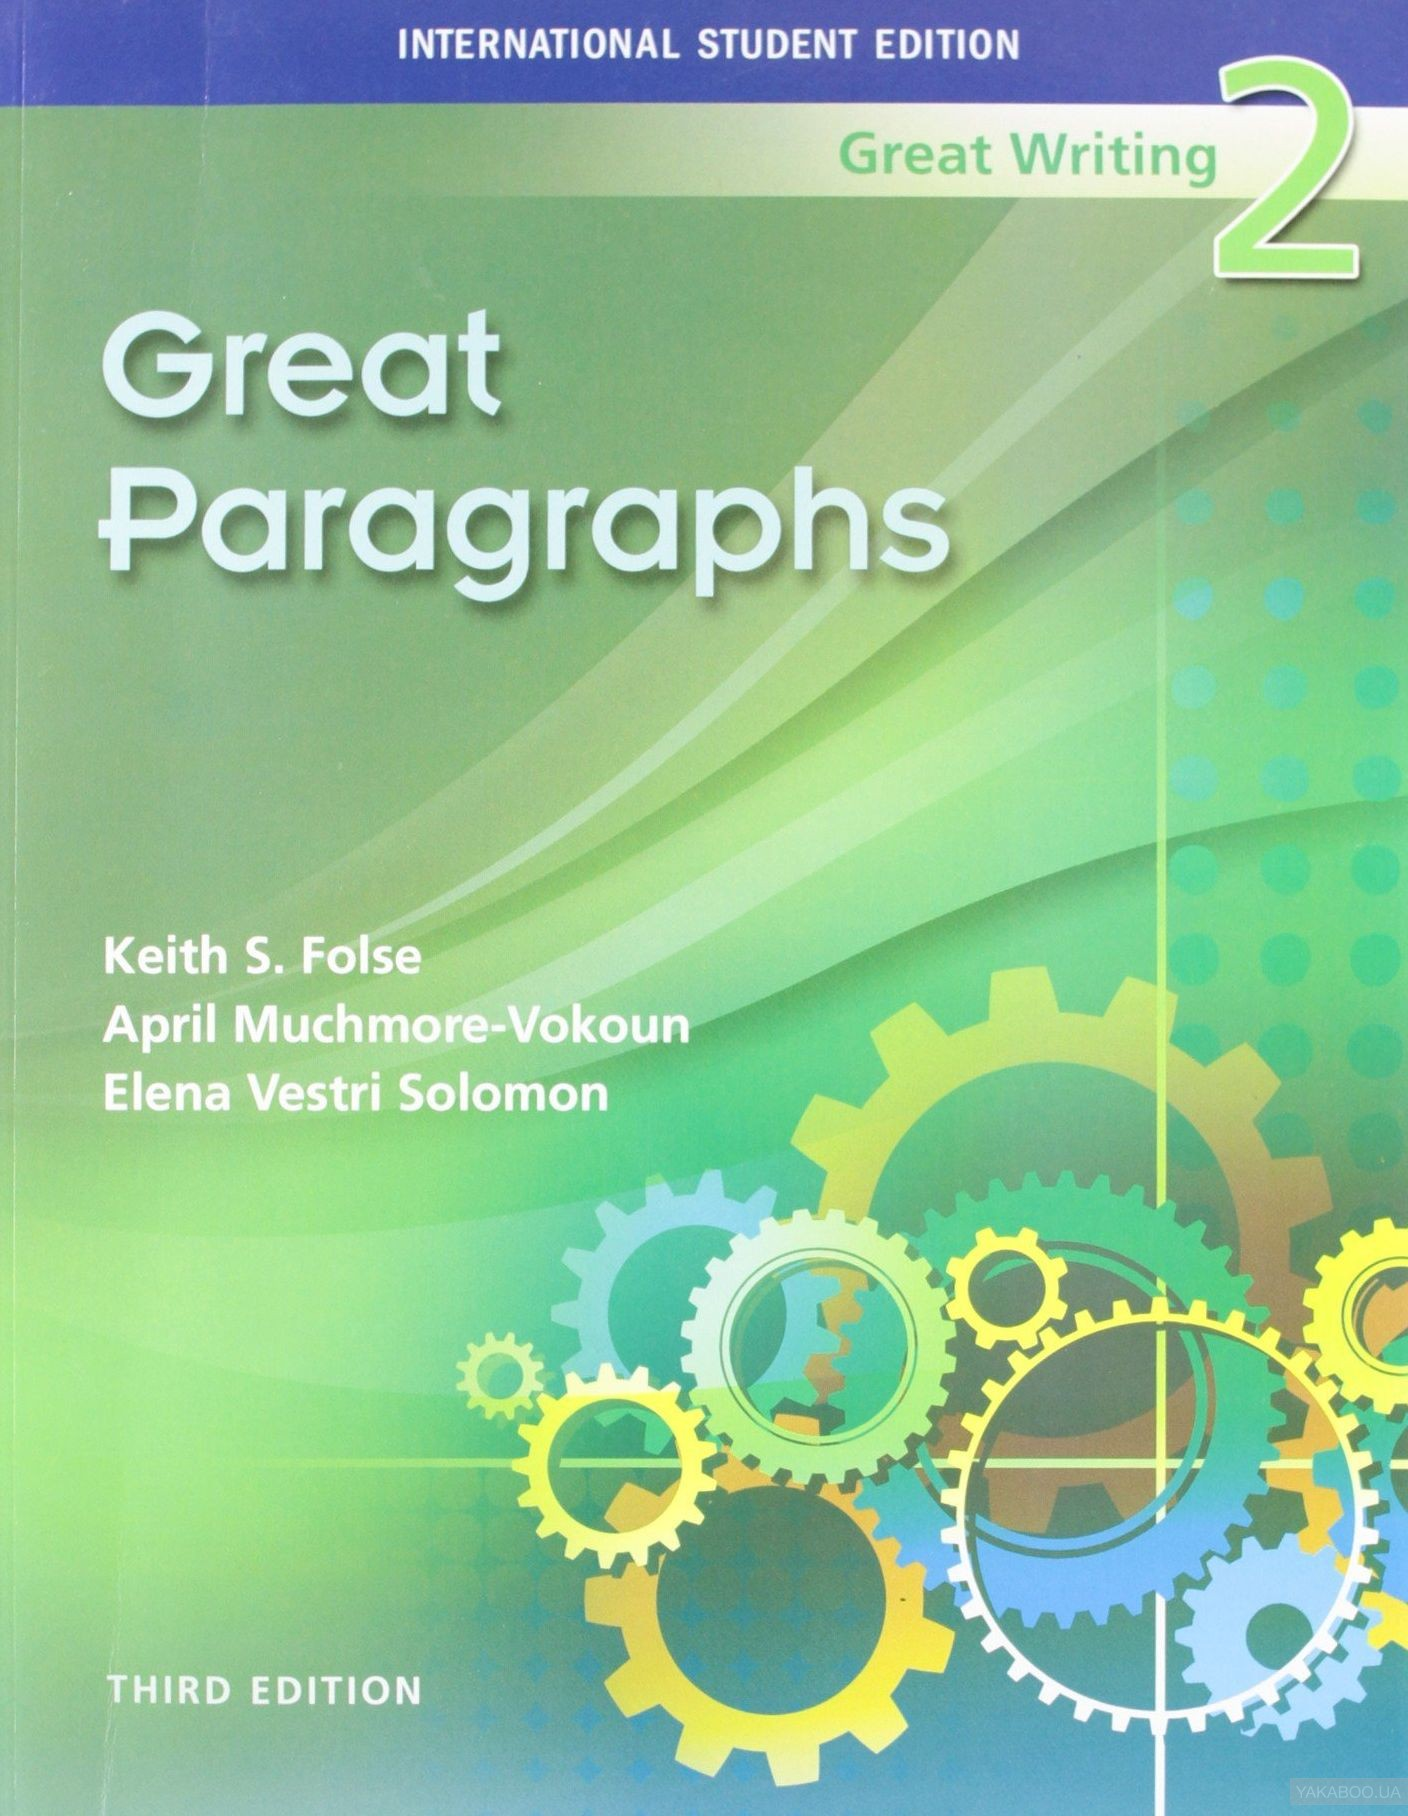 great essays second edition keith s. folse It takes a great writer to create a great writing 7: great essays keith s folse new edition of a great writing series.